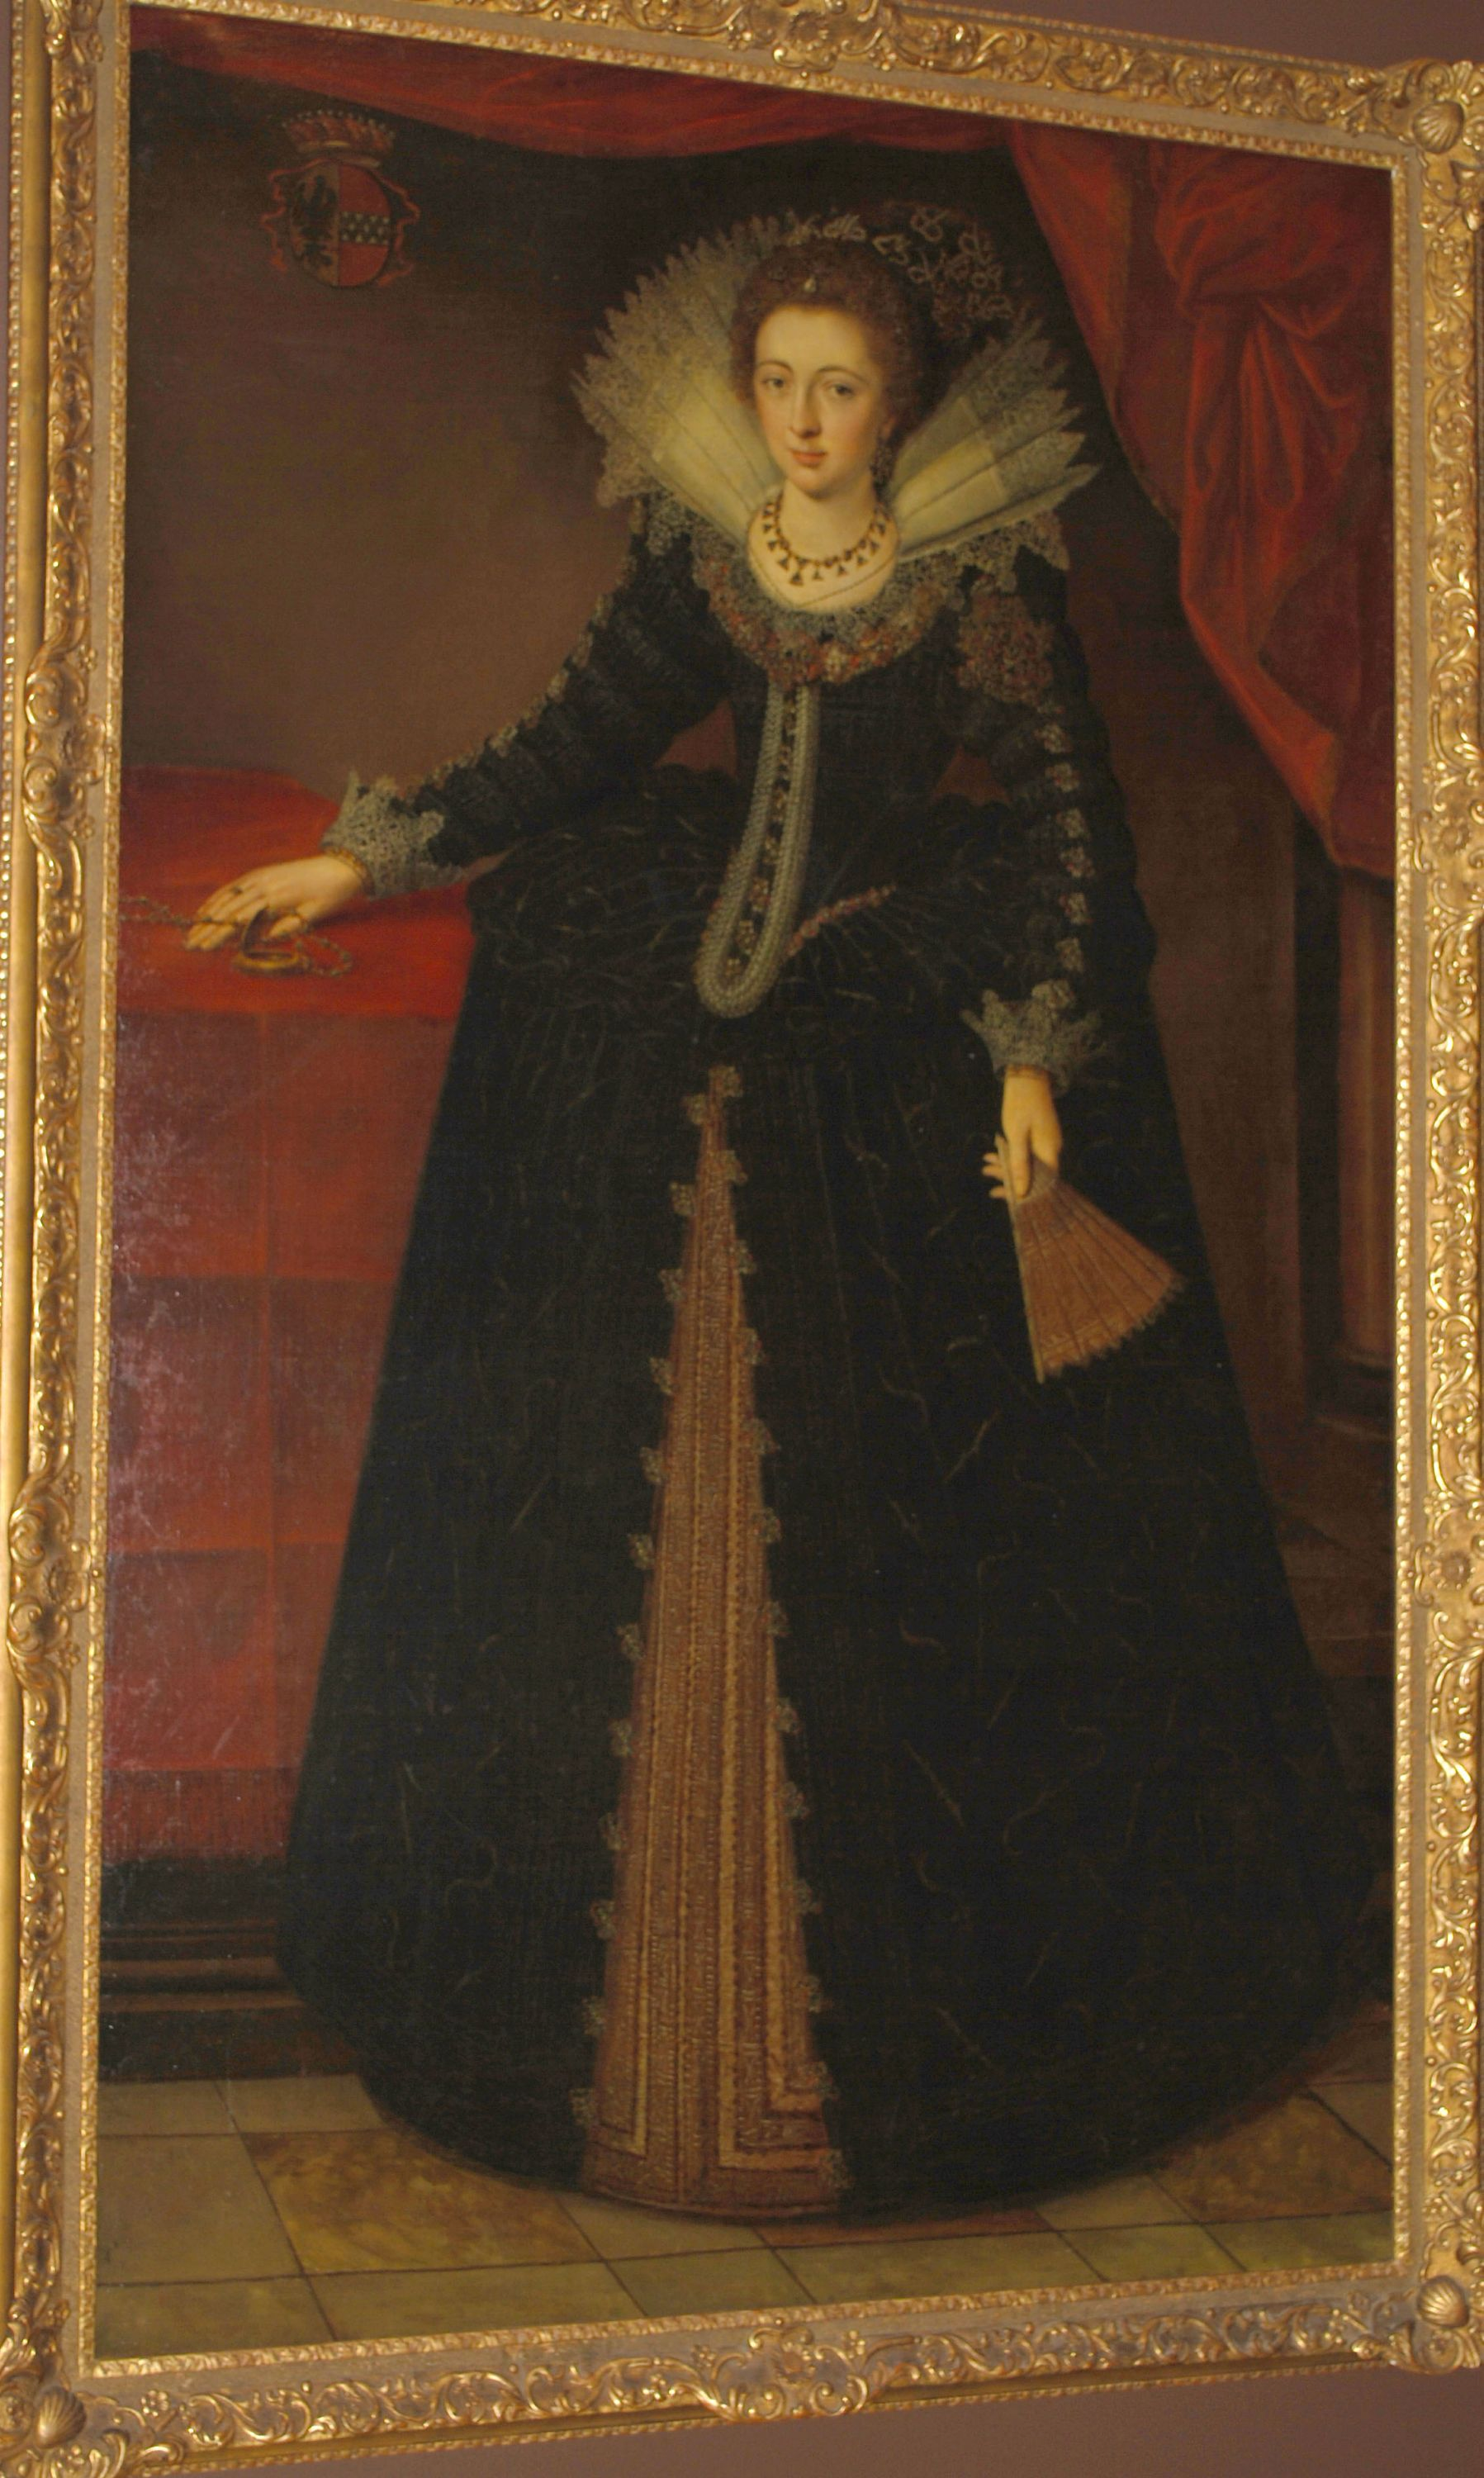 """Marguerite de Steeland de Gaud, Lady of Hasselt"" (Early 17th century), Attributed to Otto van Even, Flemish (1556-1629). Oil on canvas. Collection of the Art Fund, Inc. at the BMA. Gift of Mrs. Caroline Patterson Ireland in memory of Captain and Mrs. Hilton Johnson. AFI22.1983."